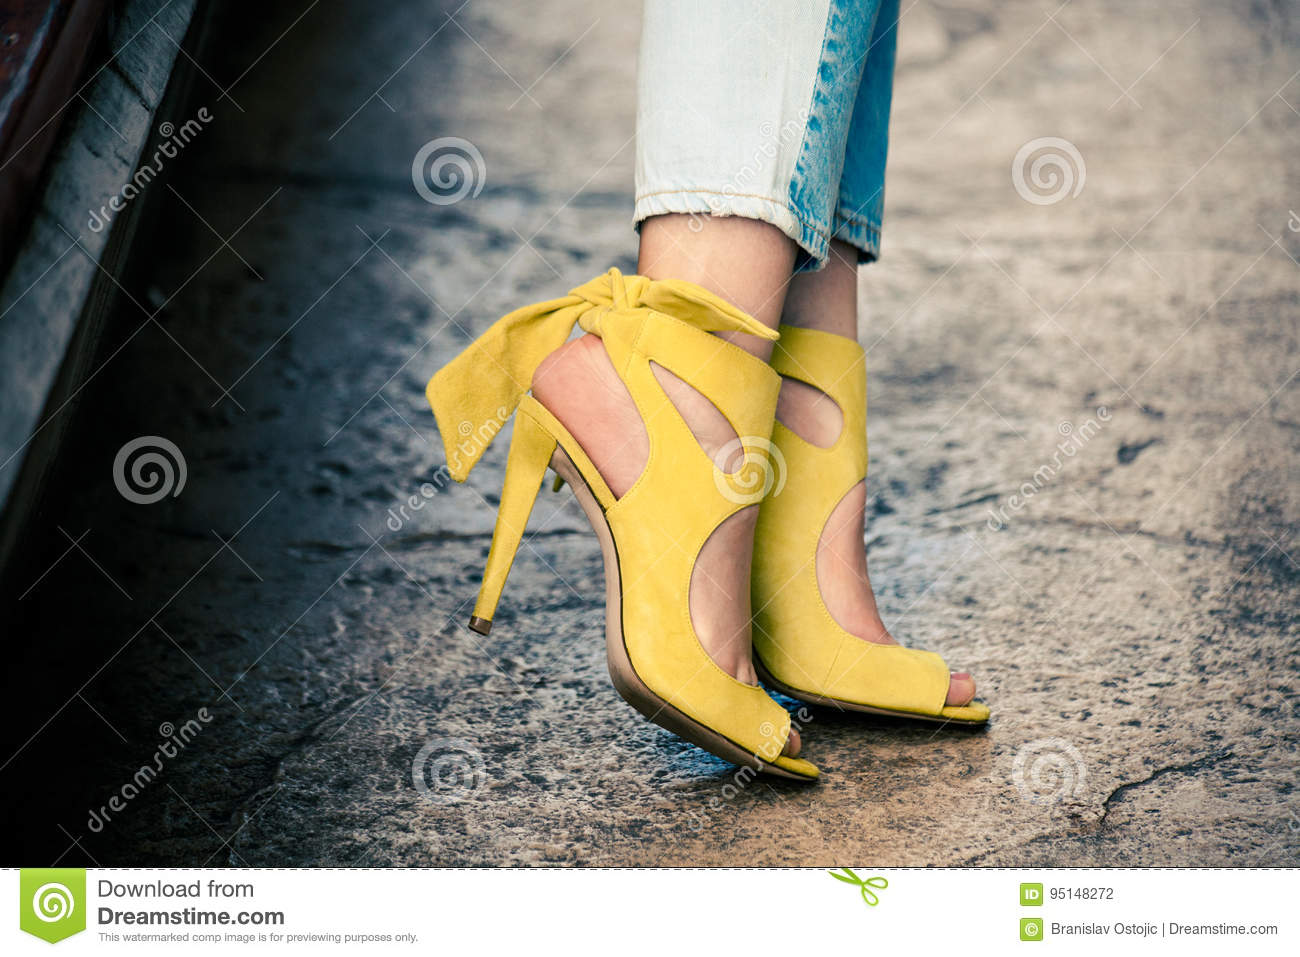 Woman legs in leather yellow high heel sandals outdoor in city